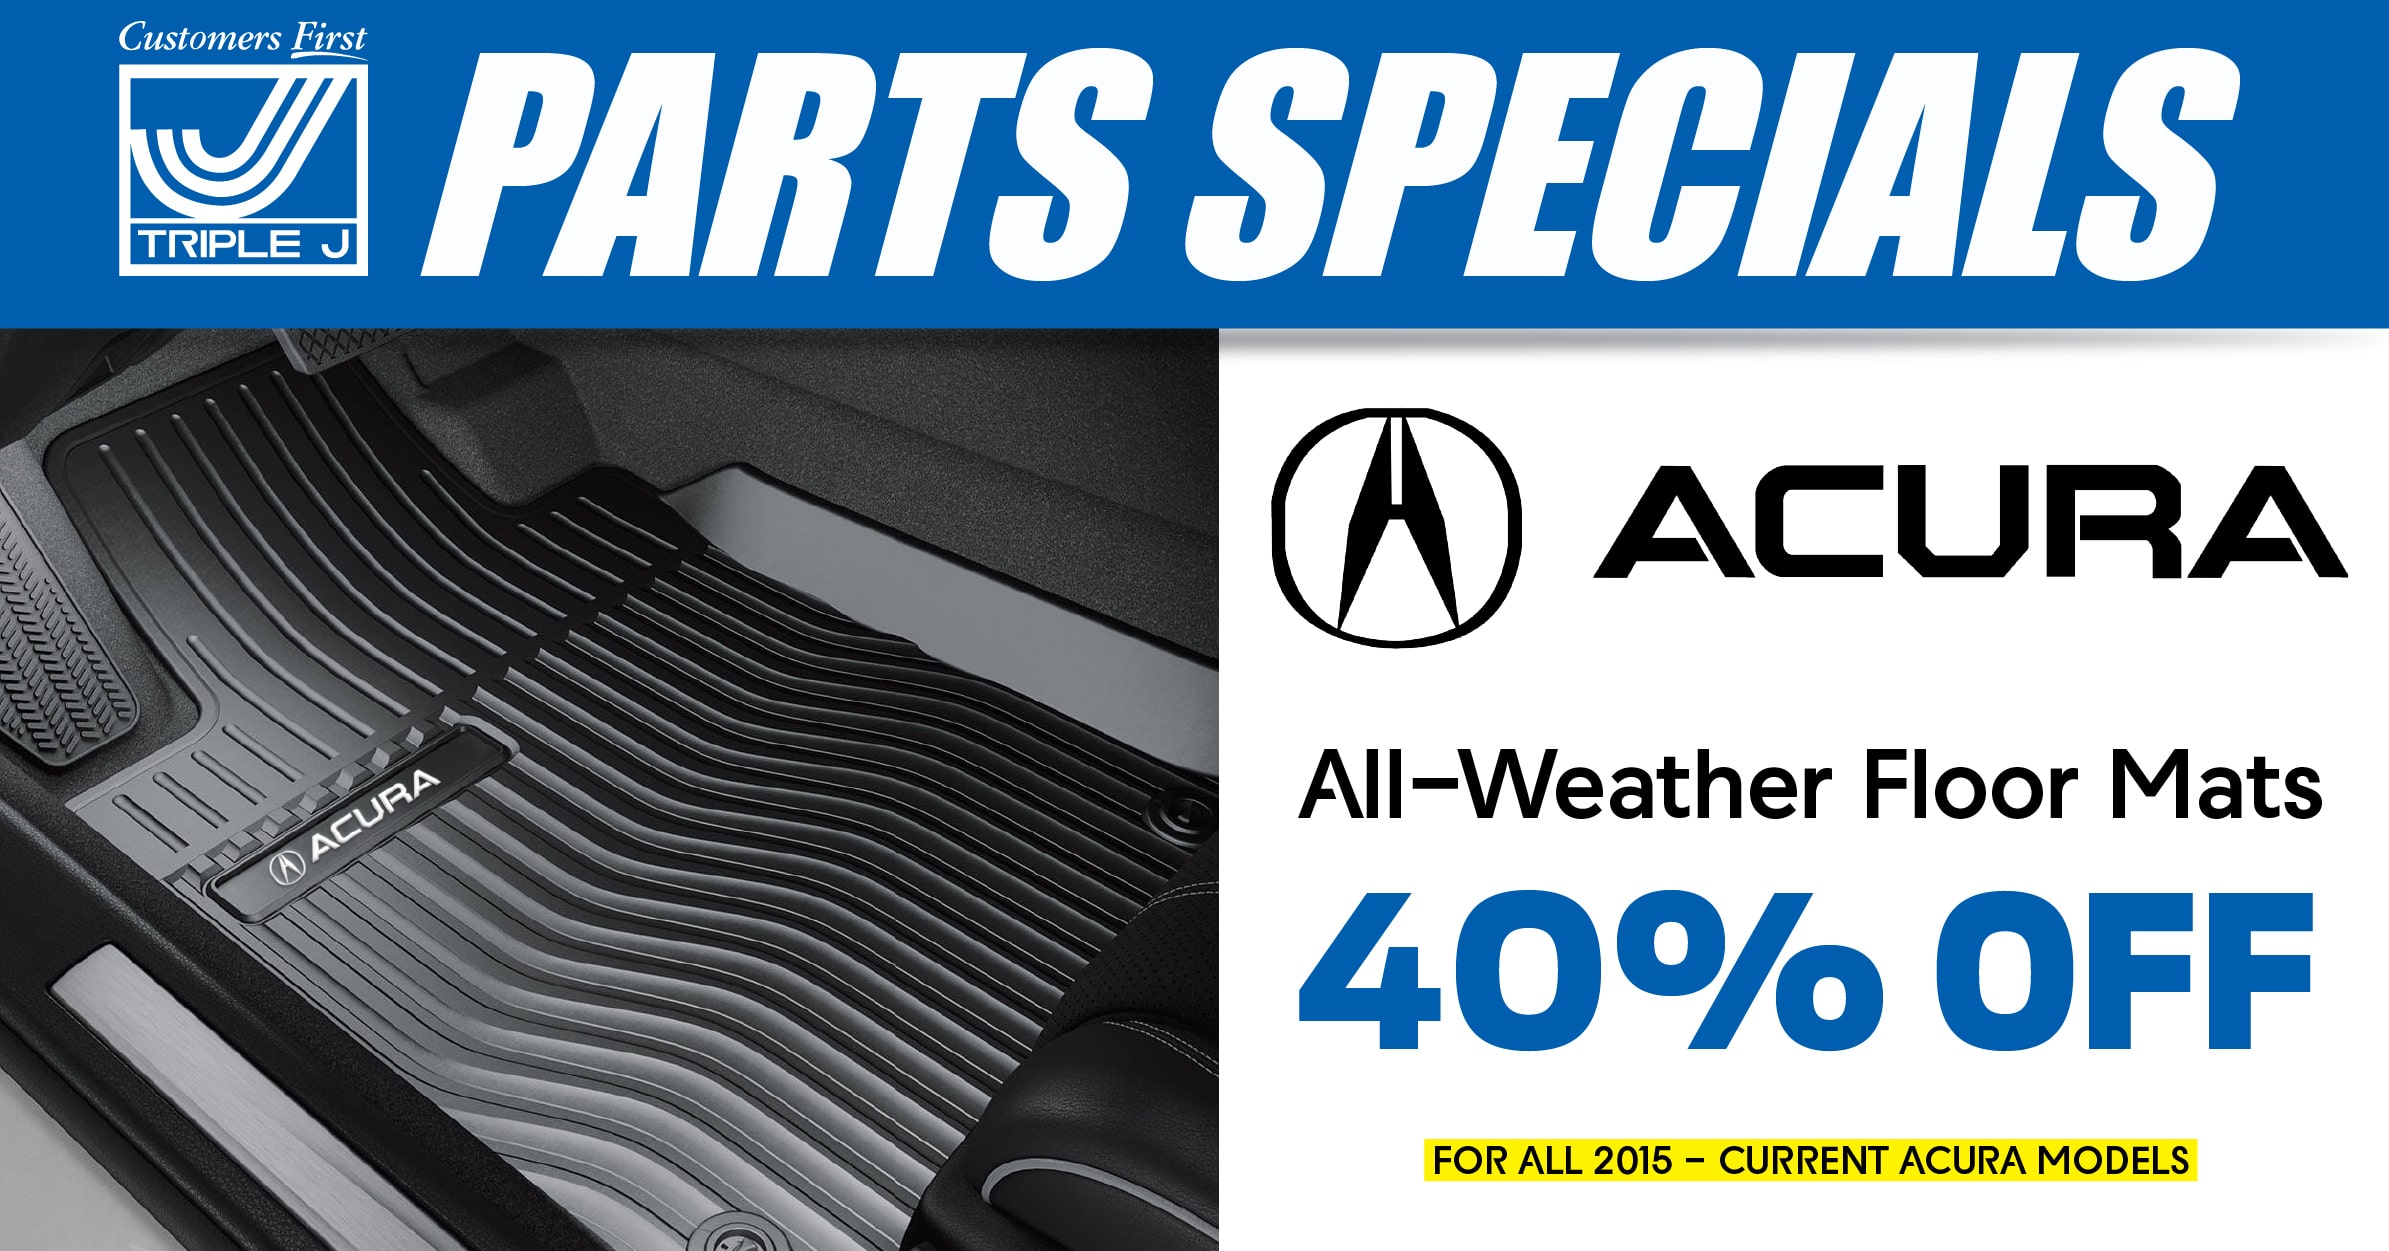 Car, Truck or SUV Acura All-Weather Floor Mats Special Coupon